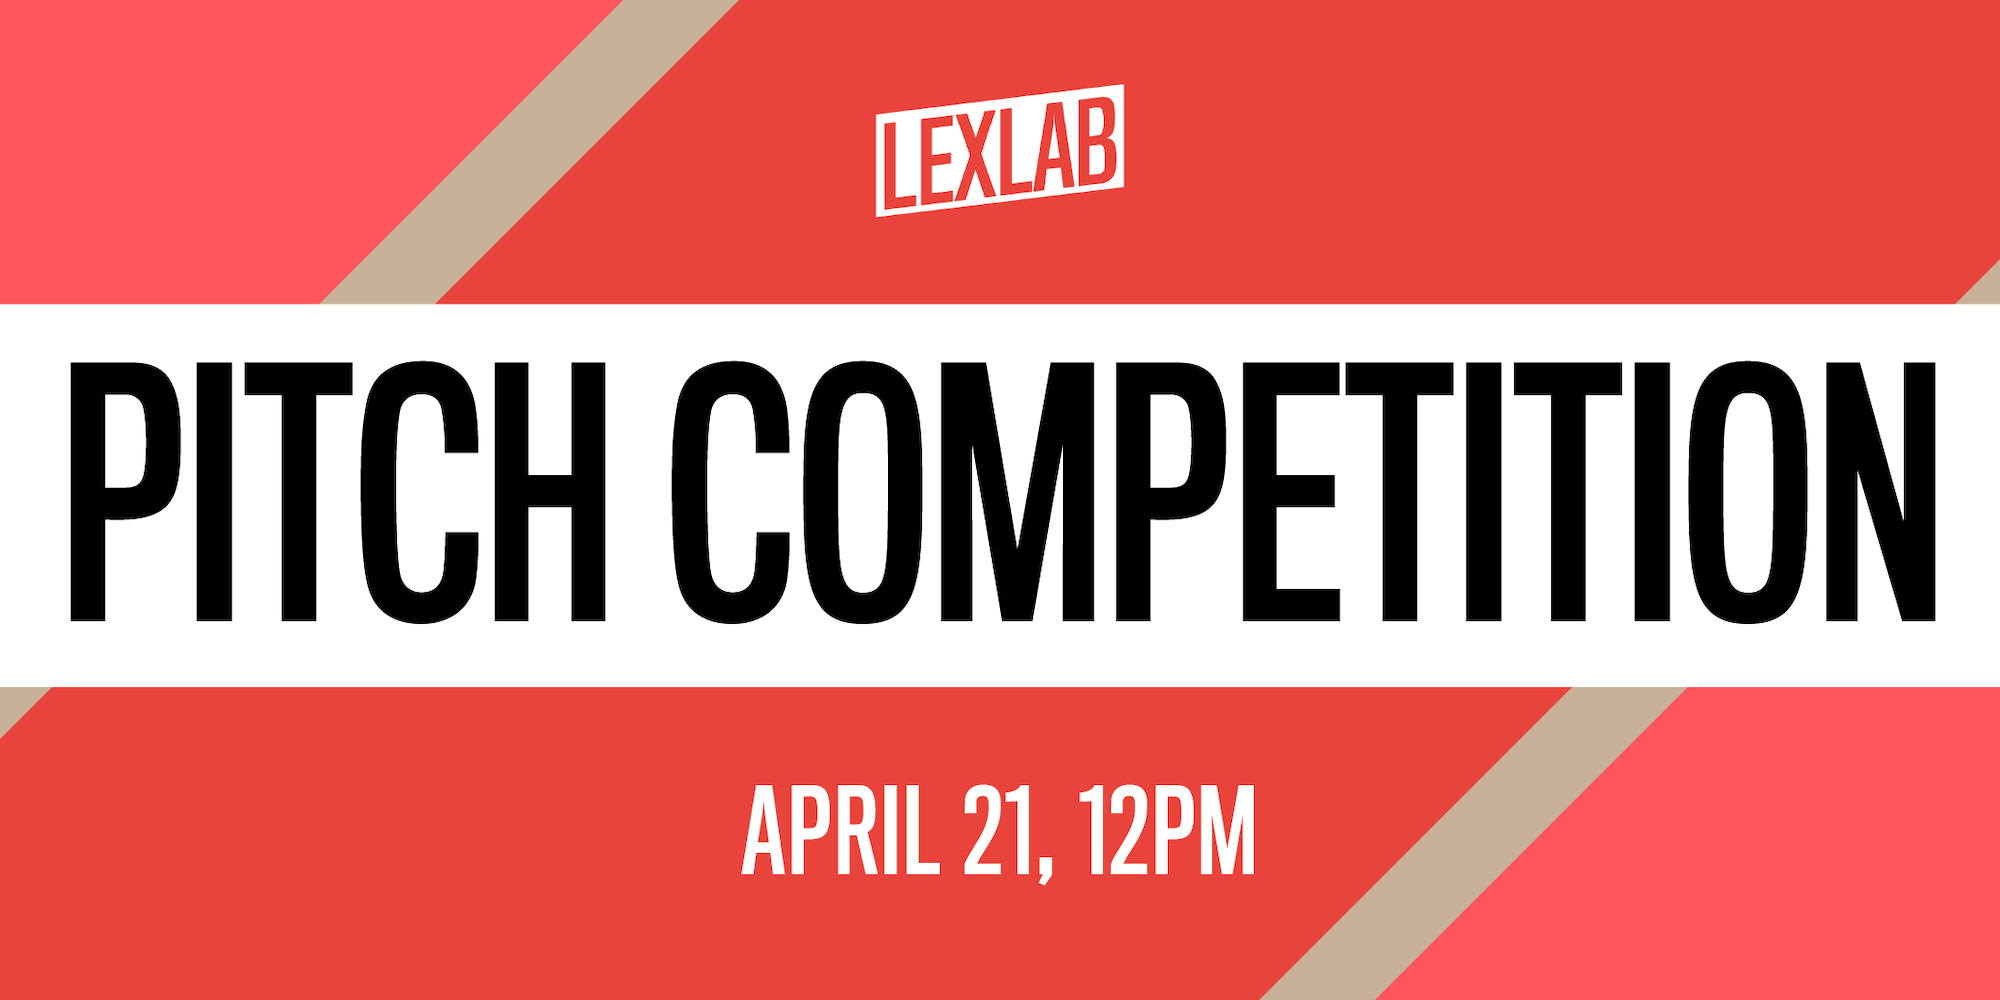 pitch competition April 21 noon